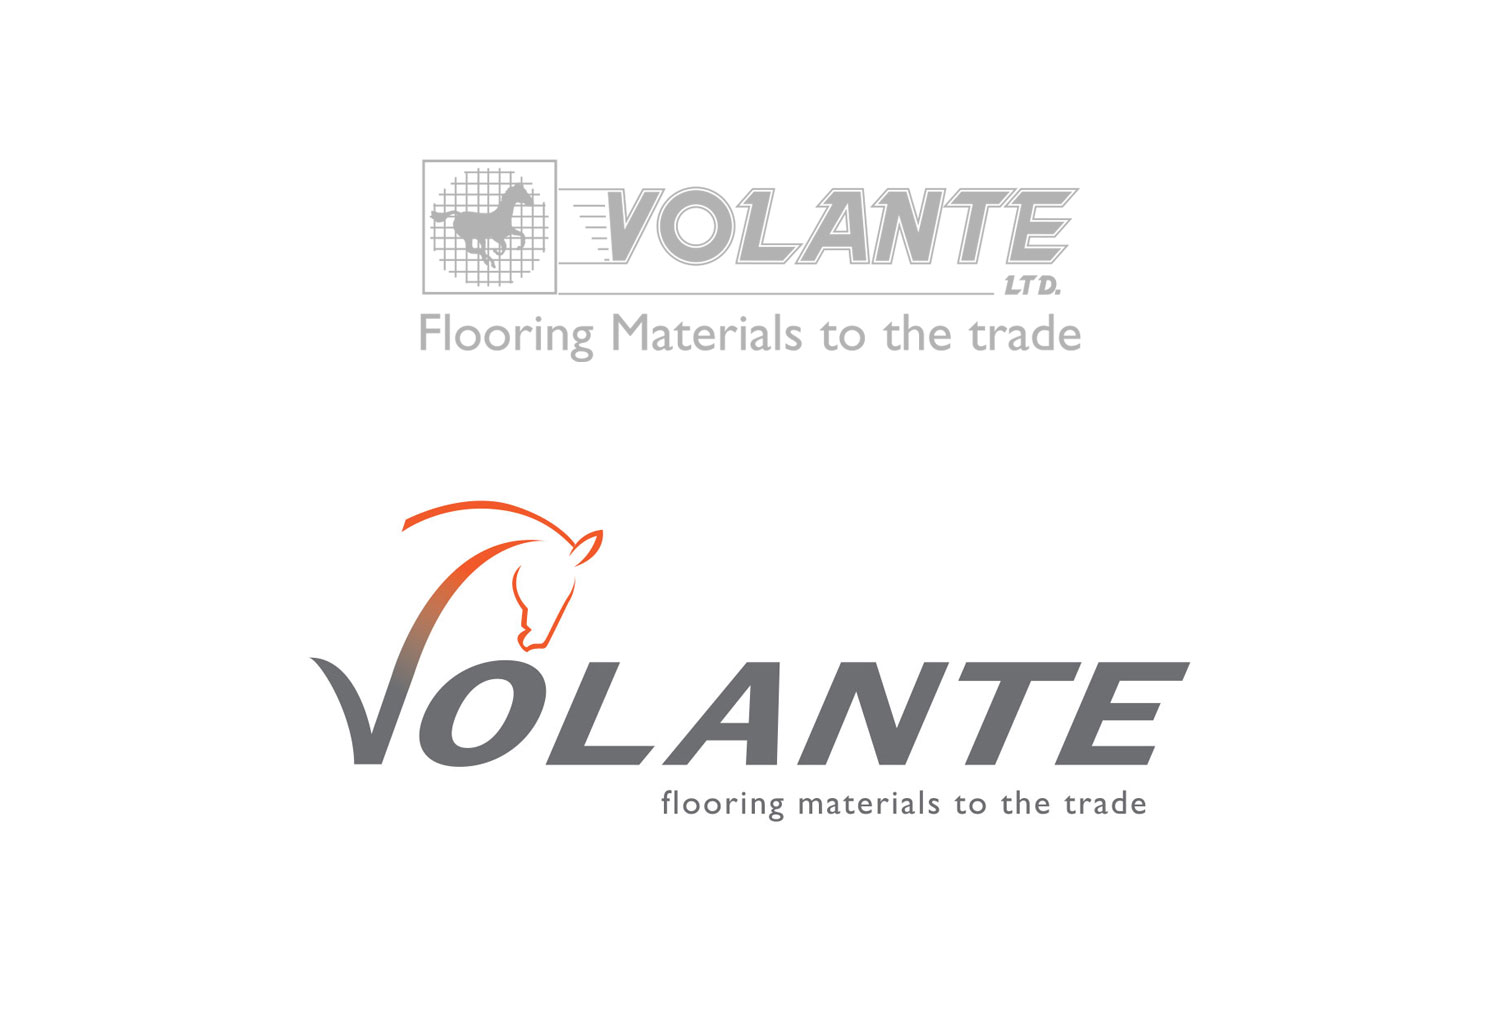 The old Volante logo next to the new